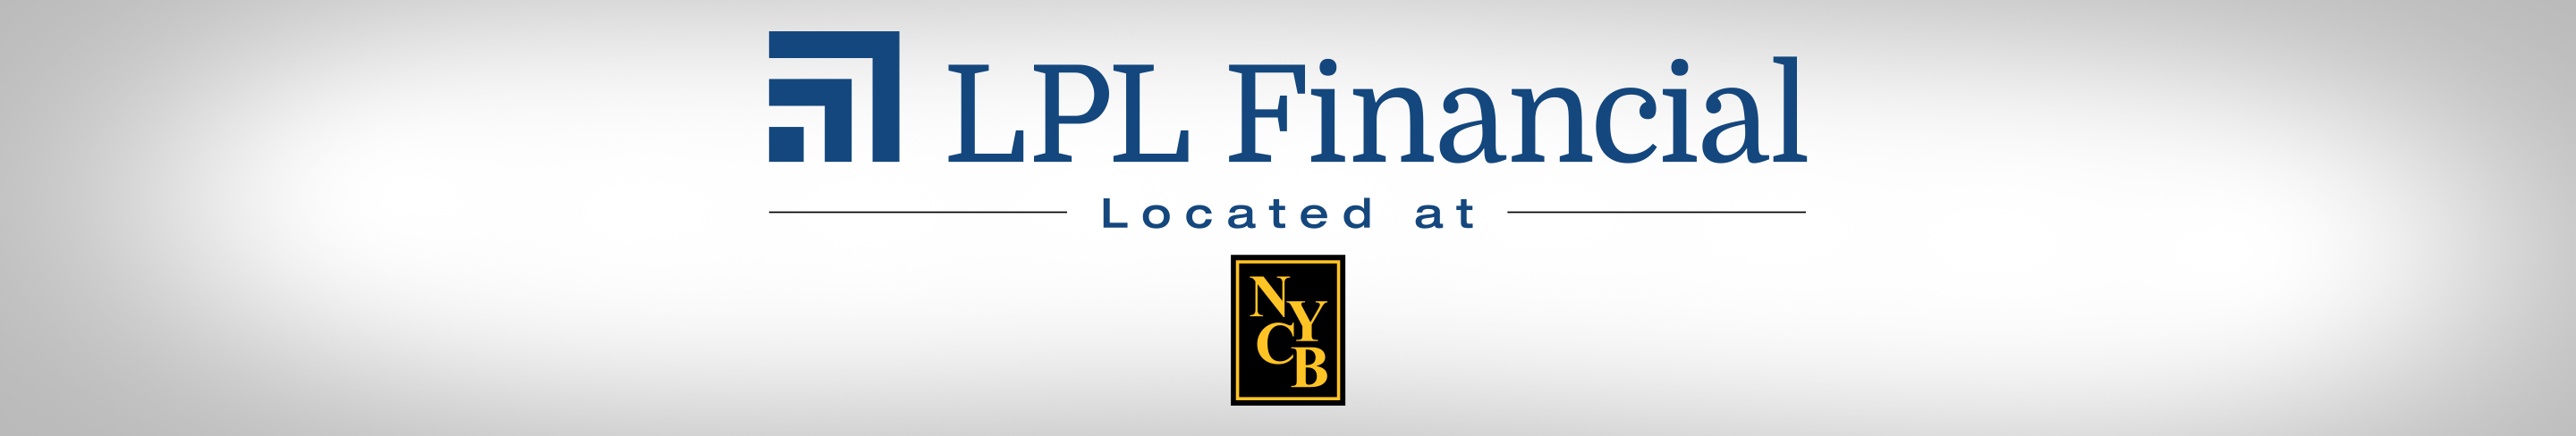 LPL Financial located at NYCB